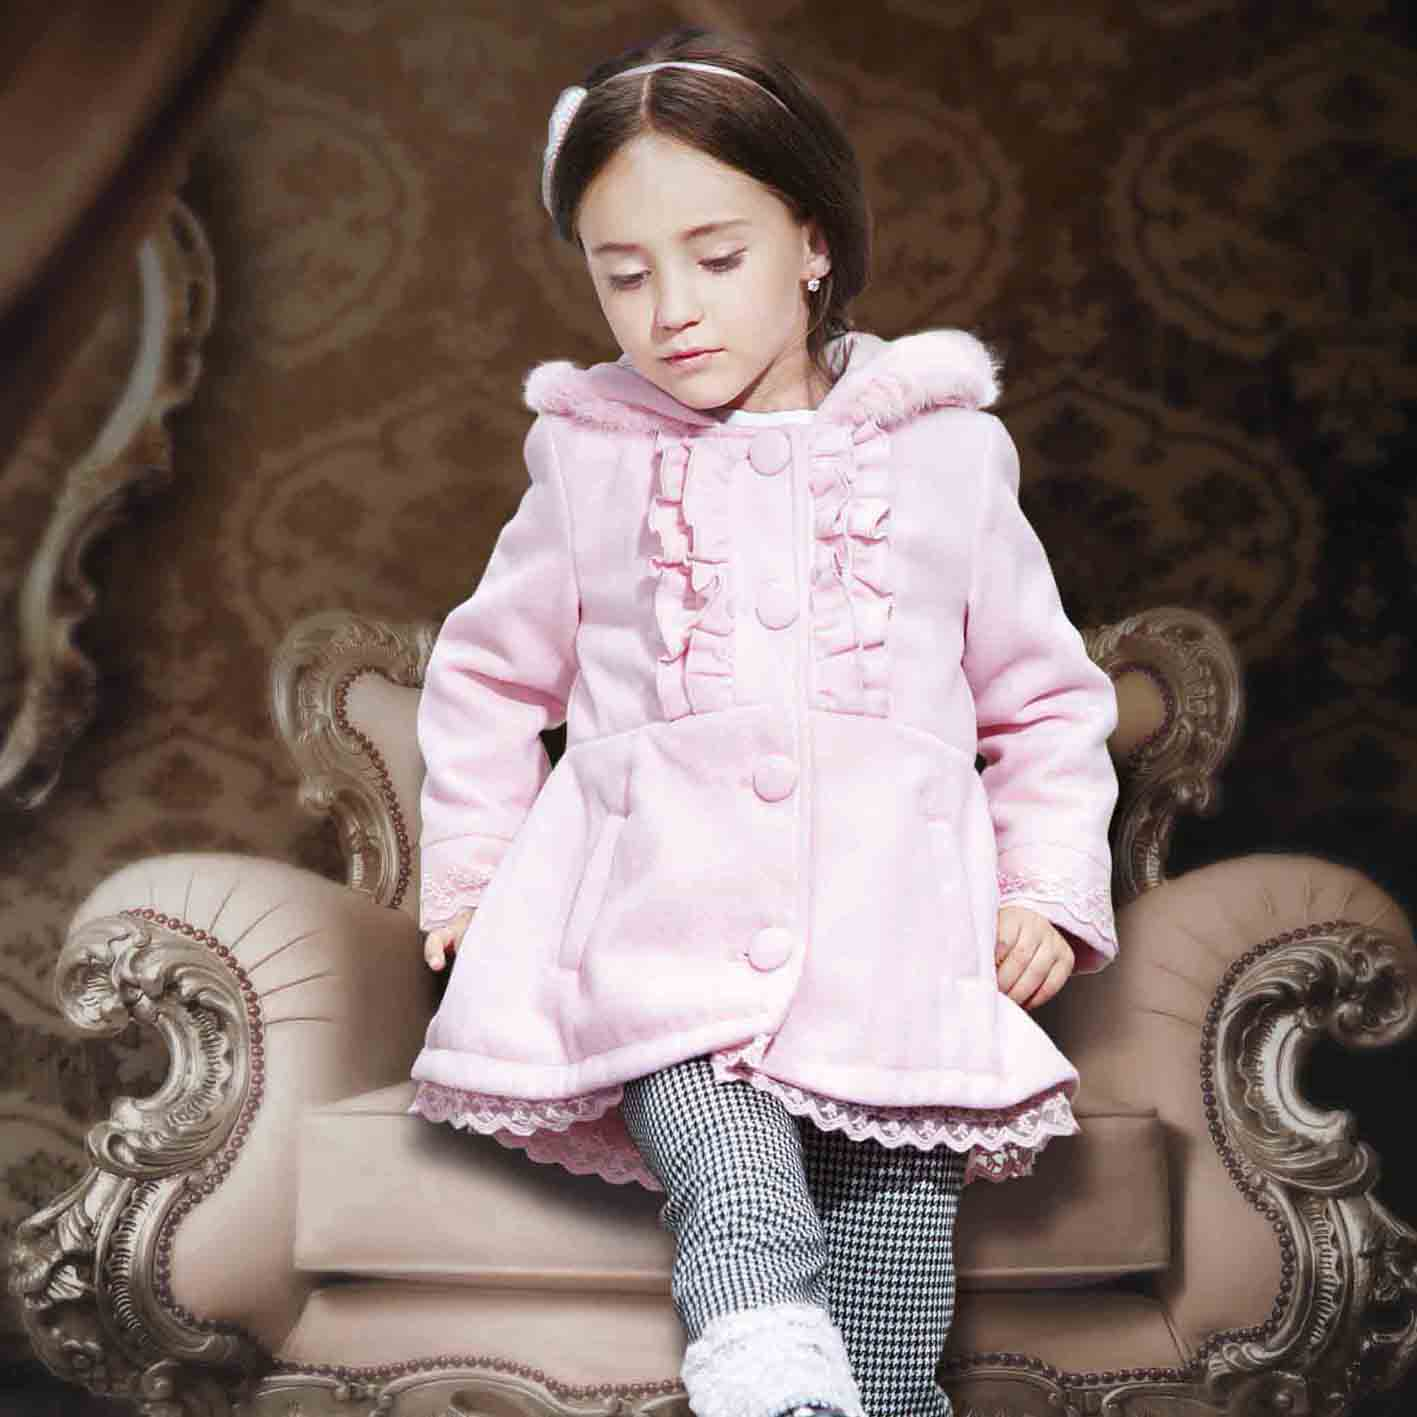 feea00cec Warm Childrens Winter Coats - Tradingbasis